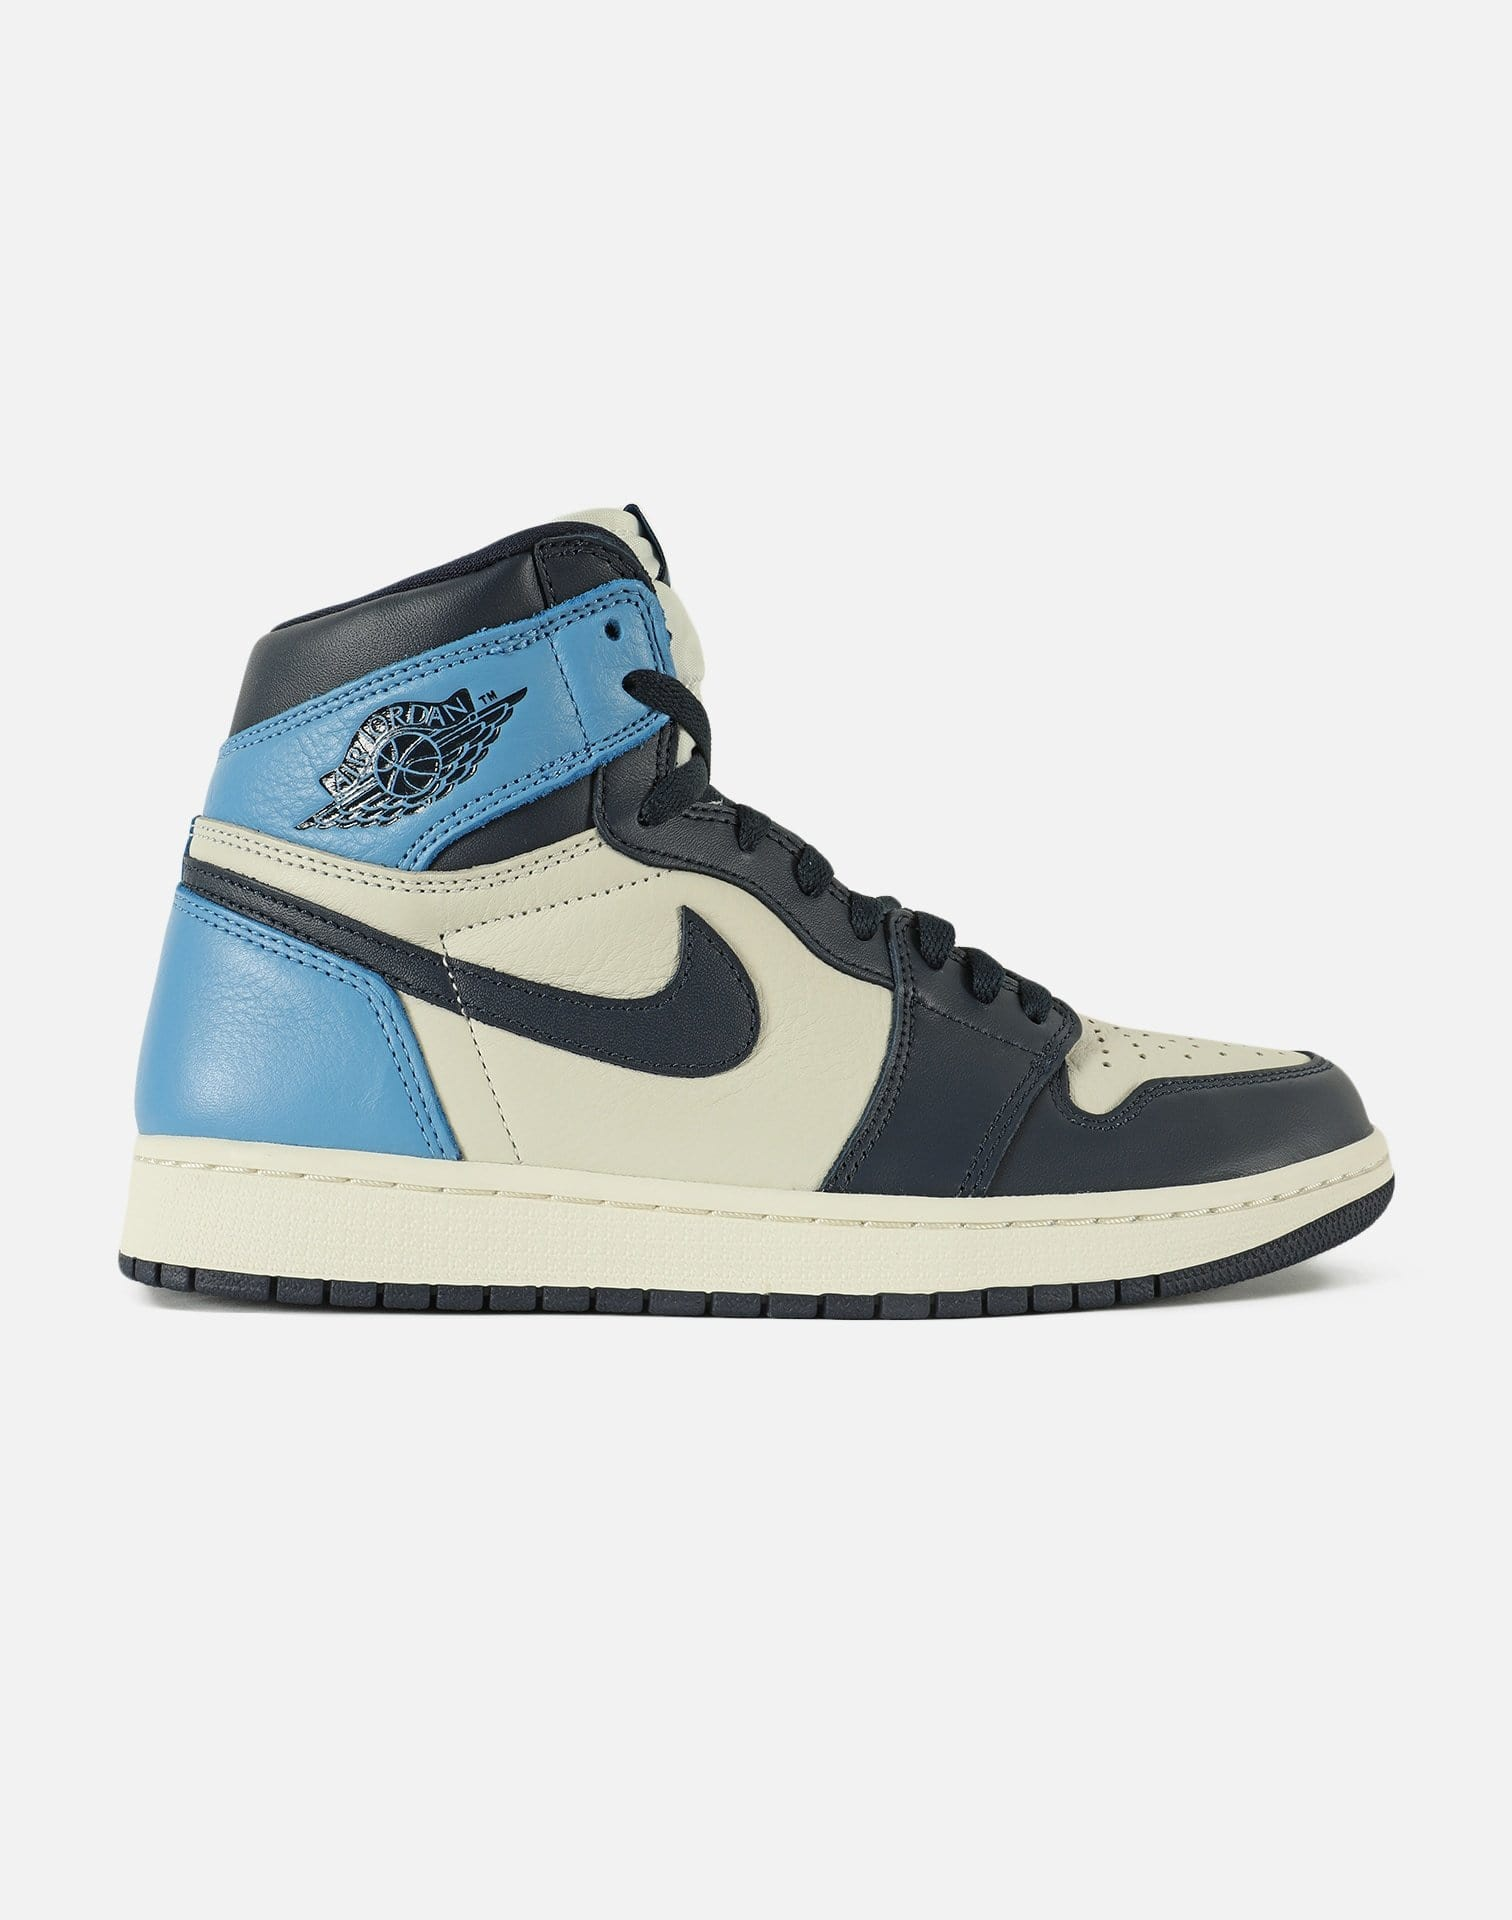 Jordan Men's Air Jordan Retro 1 High OG 'Obsidian'